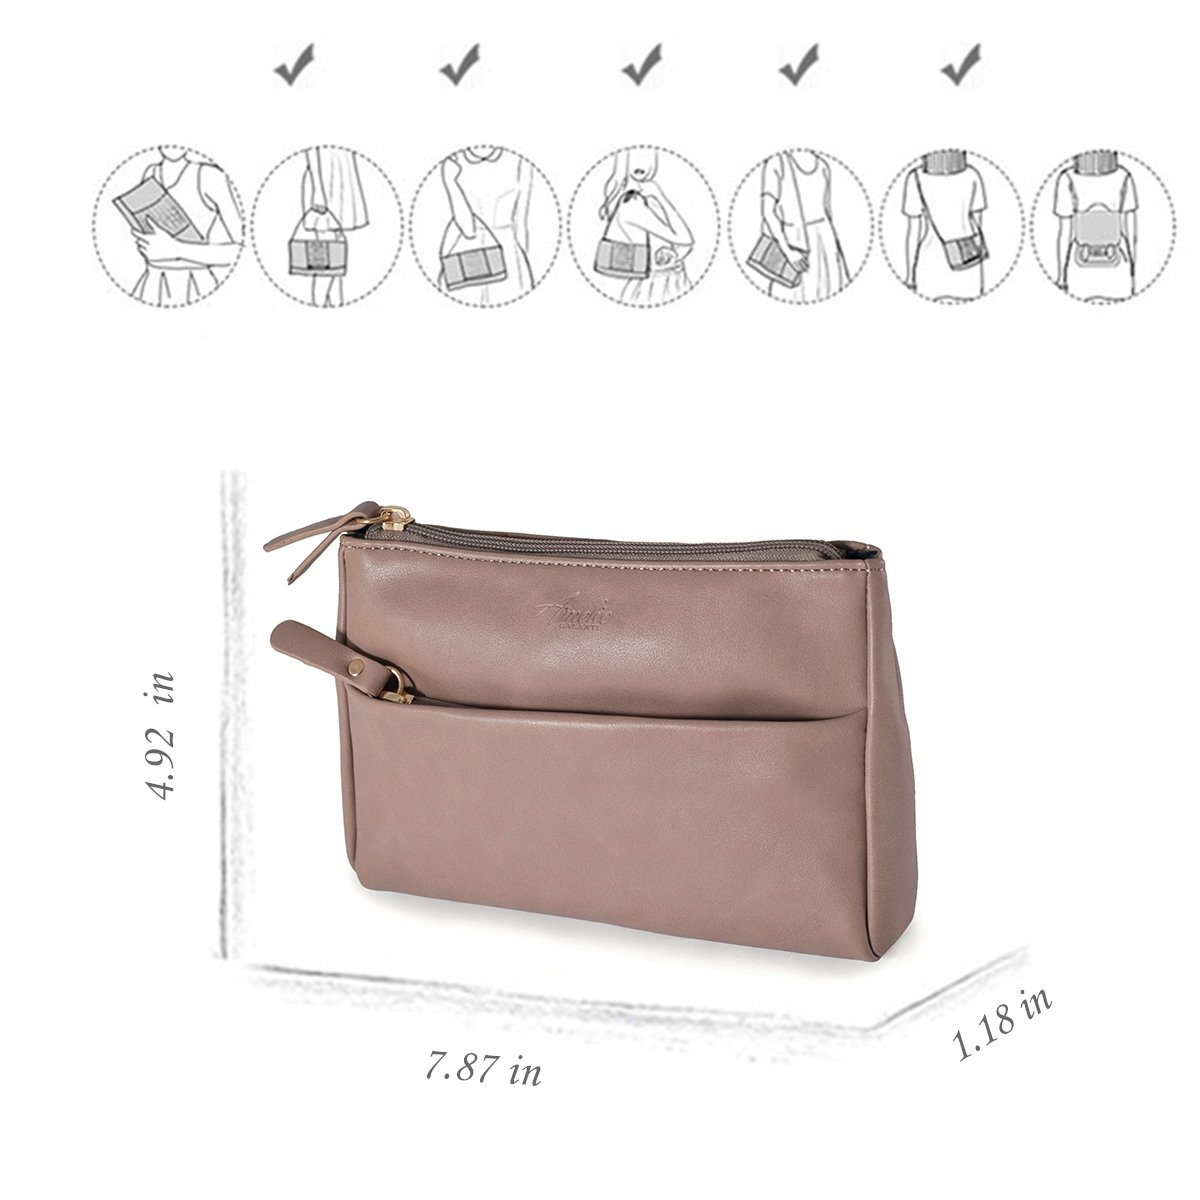 Double Zip Small Crossbody Bag Satchel for Women by AMELIE GALANTI (Image #6)